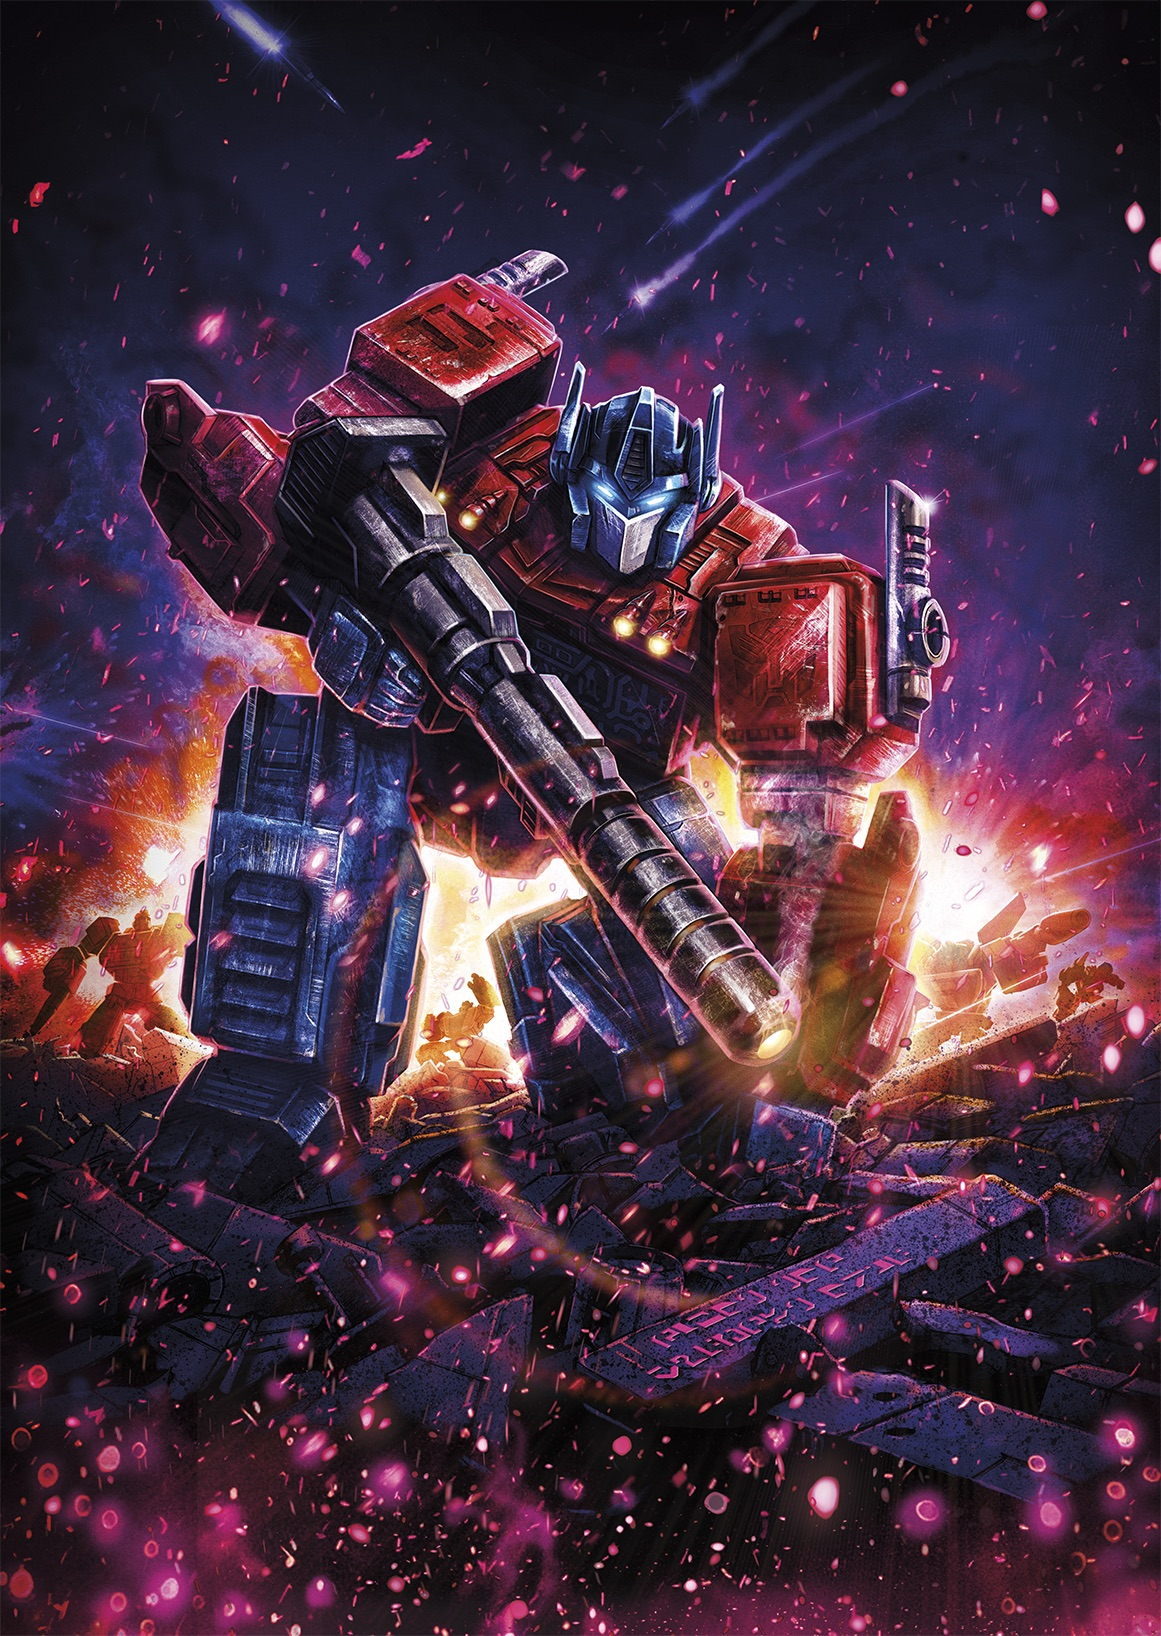 Transformers Generations War For Cybertron Figures